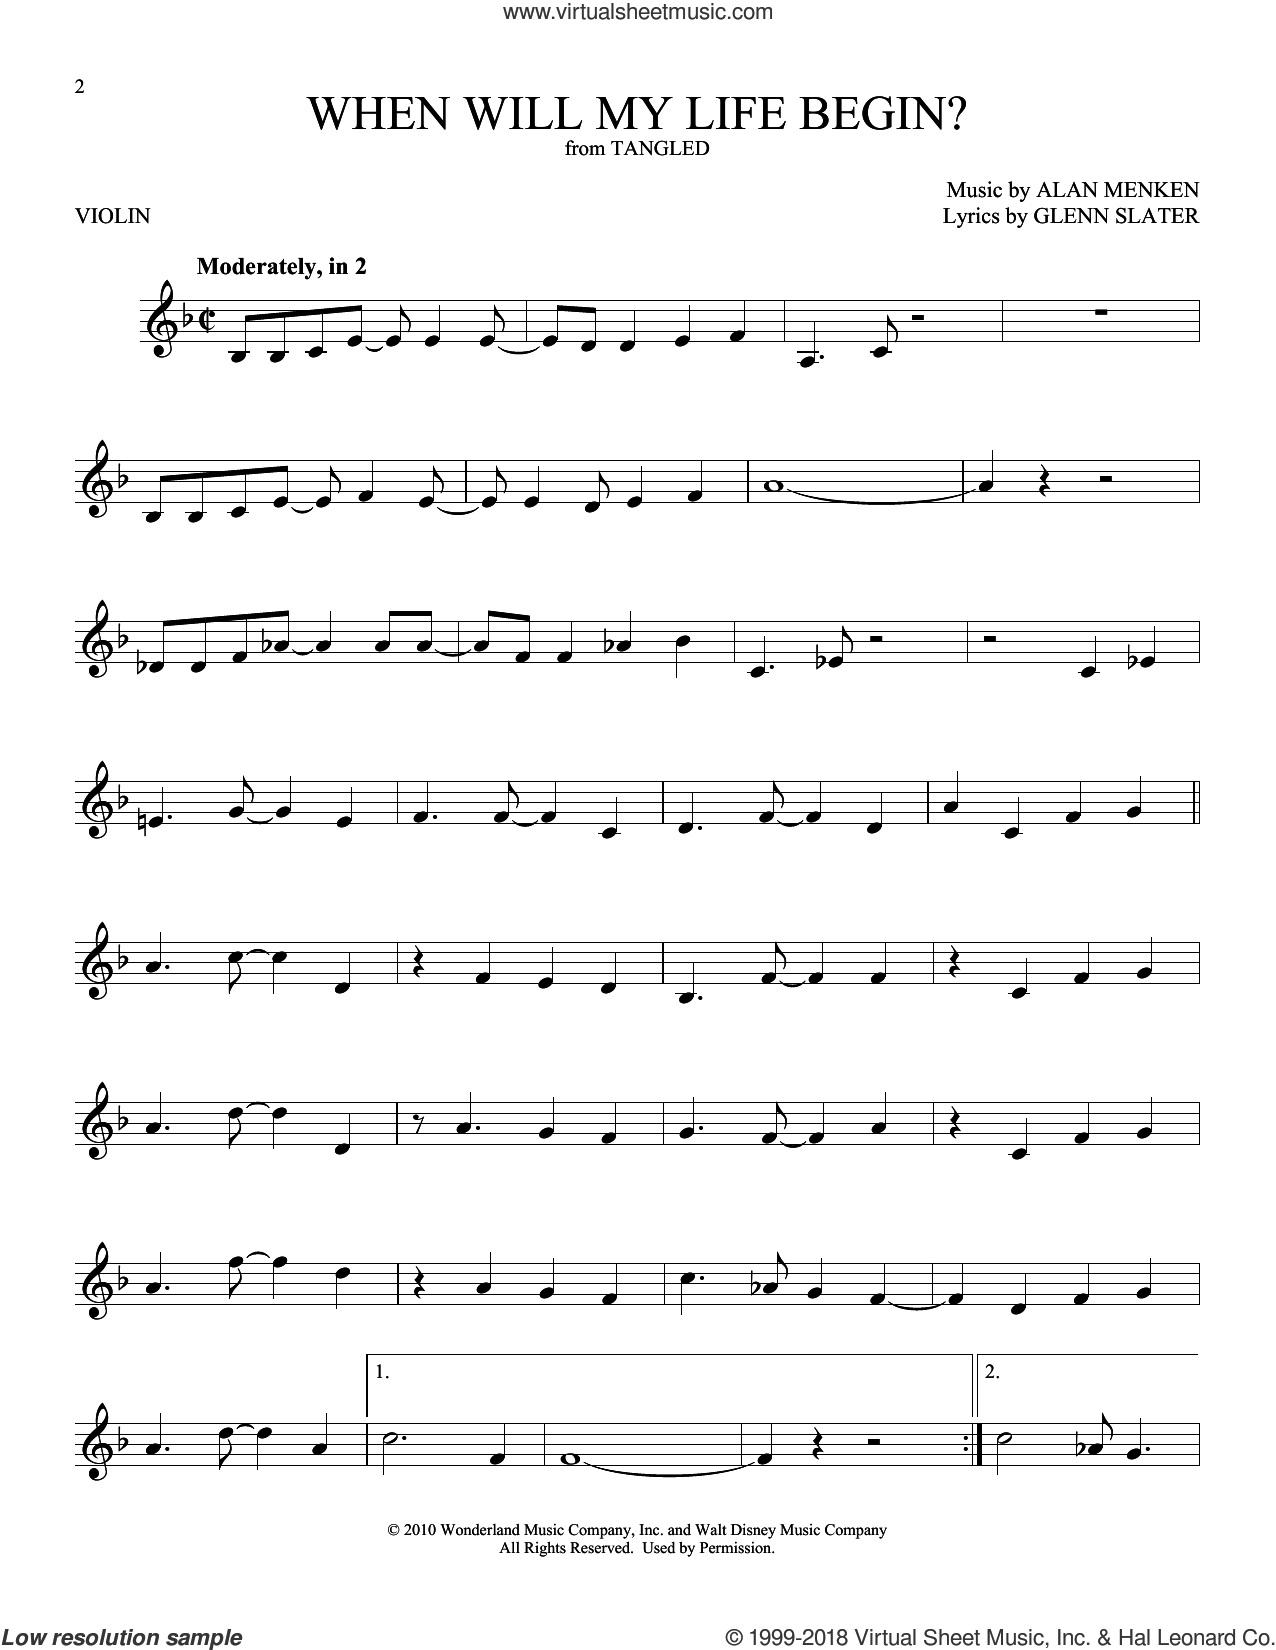 When Will My Life Begin? (from Disney's Tangled) sheet music for violin solo by Mandy Moore, Alan Menken and Glenn Slater, intermediate skill level